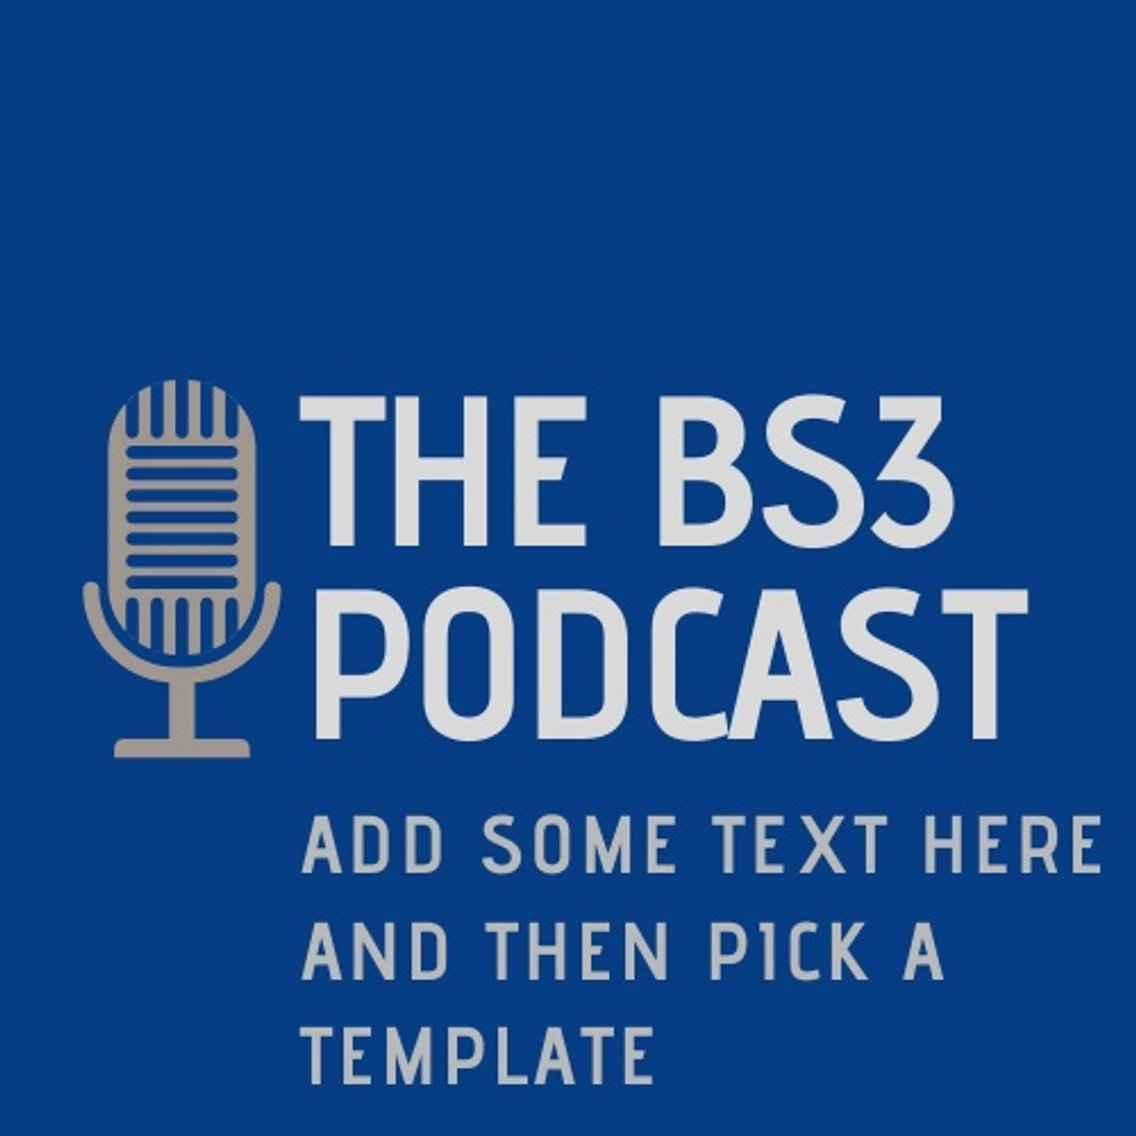 The BS3 Podcast - Cover Image